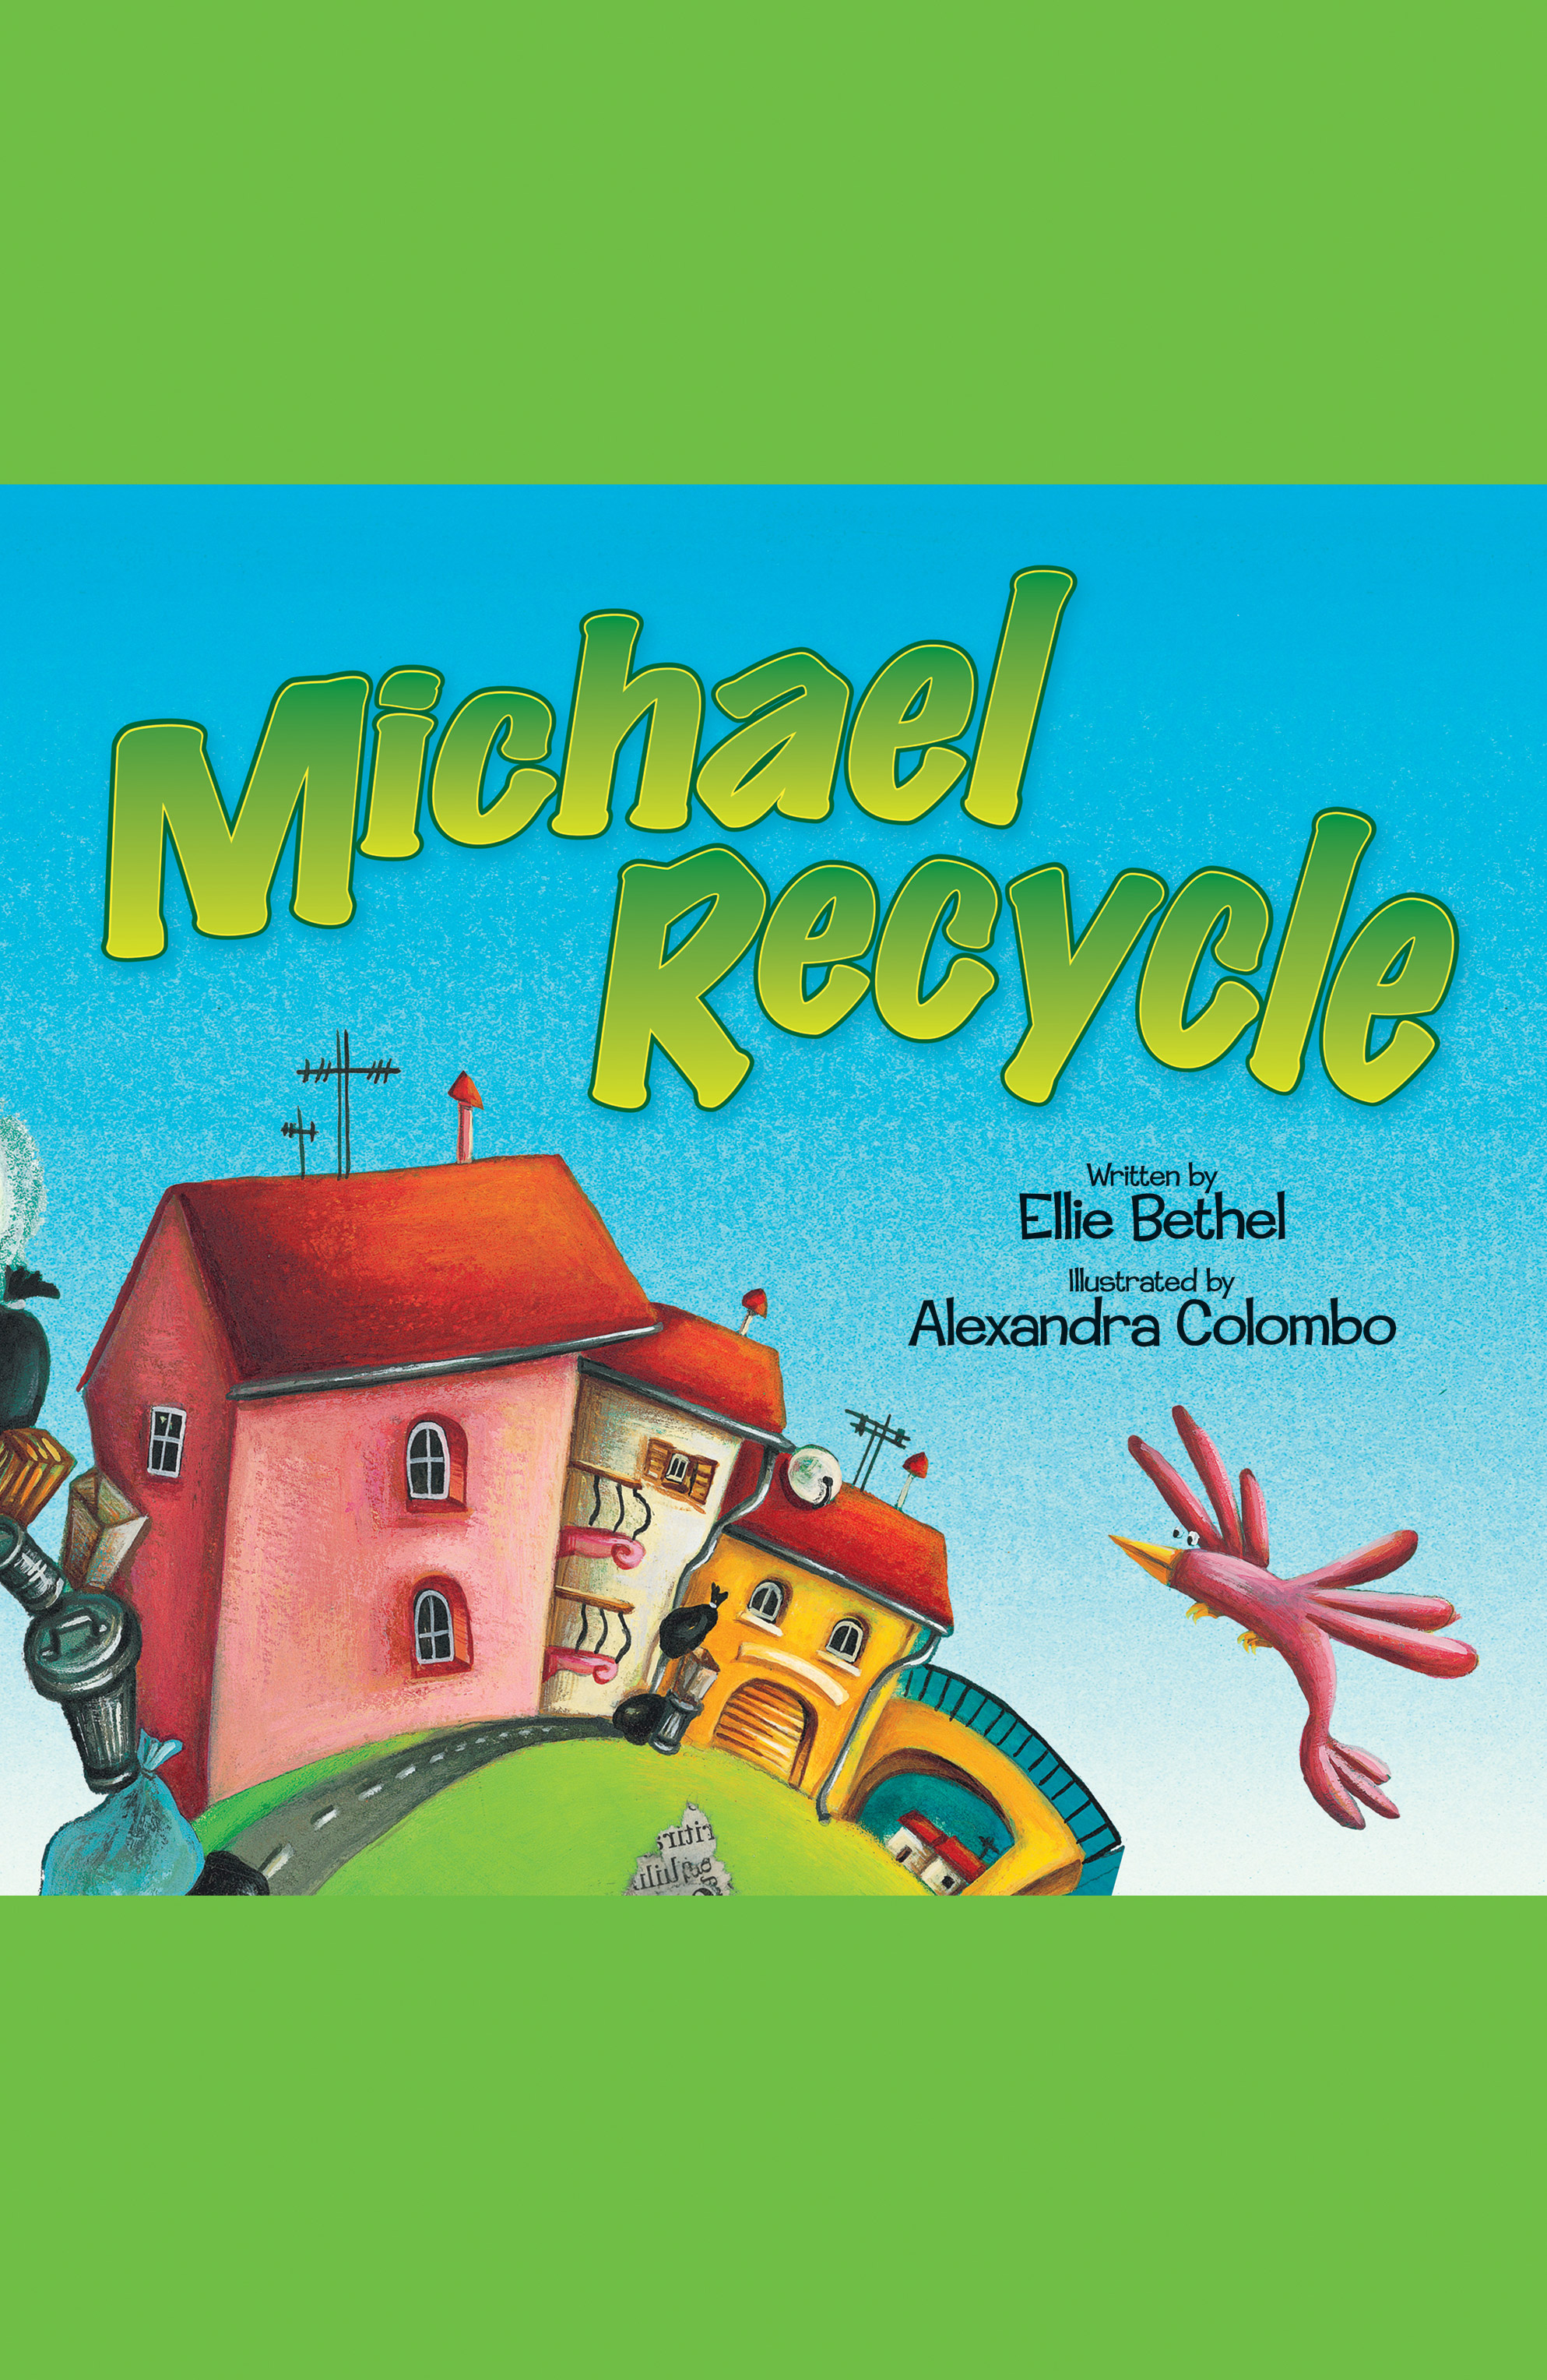 Read online Michael Recycle comic -  Issue #4 - 28